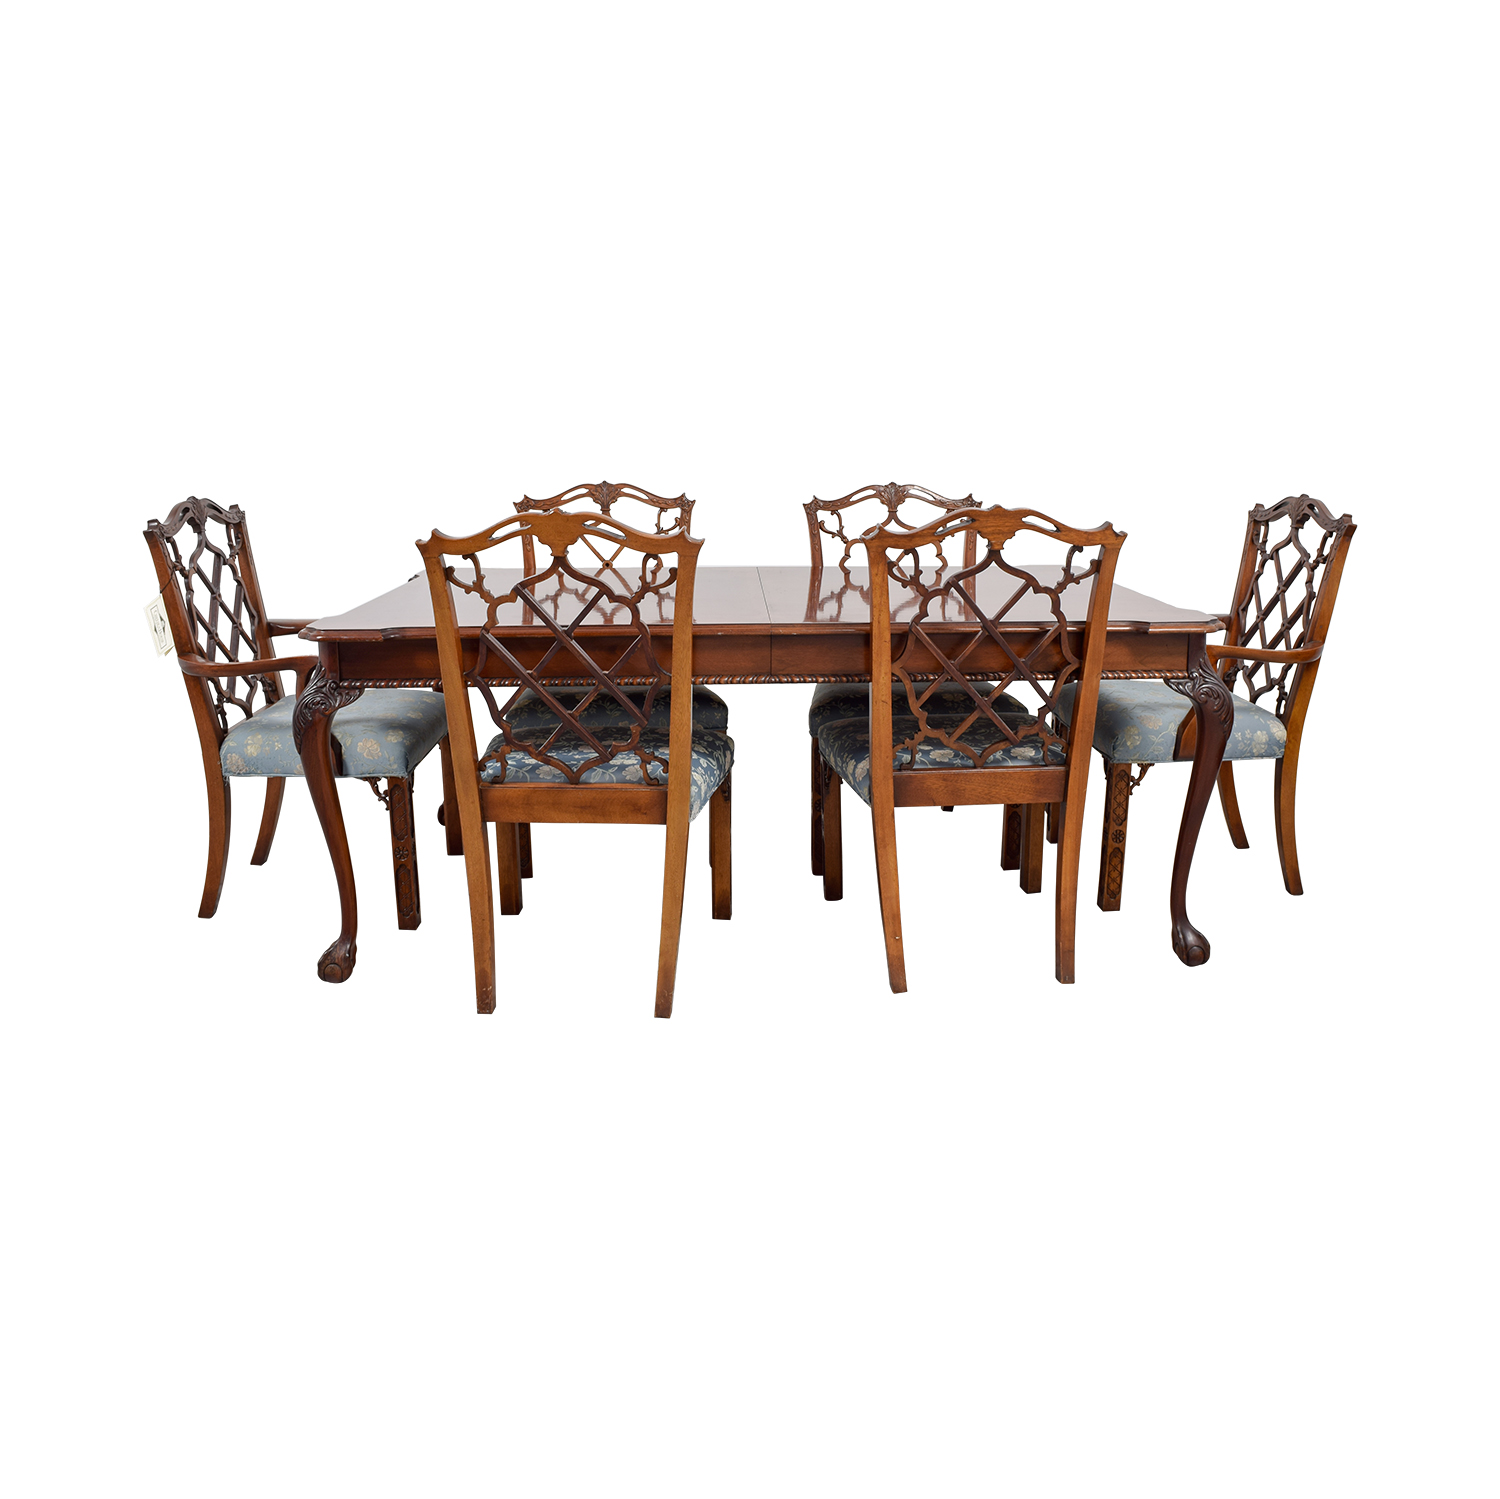 Century Dining Table with Extension Leaf and Chelsea Custom Upholstered Chairs